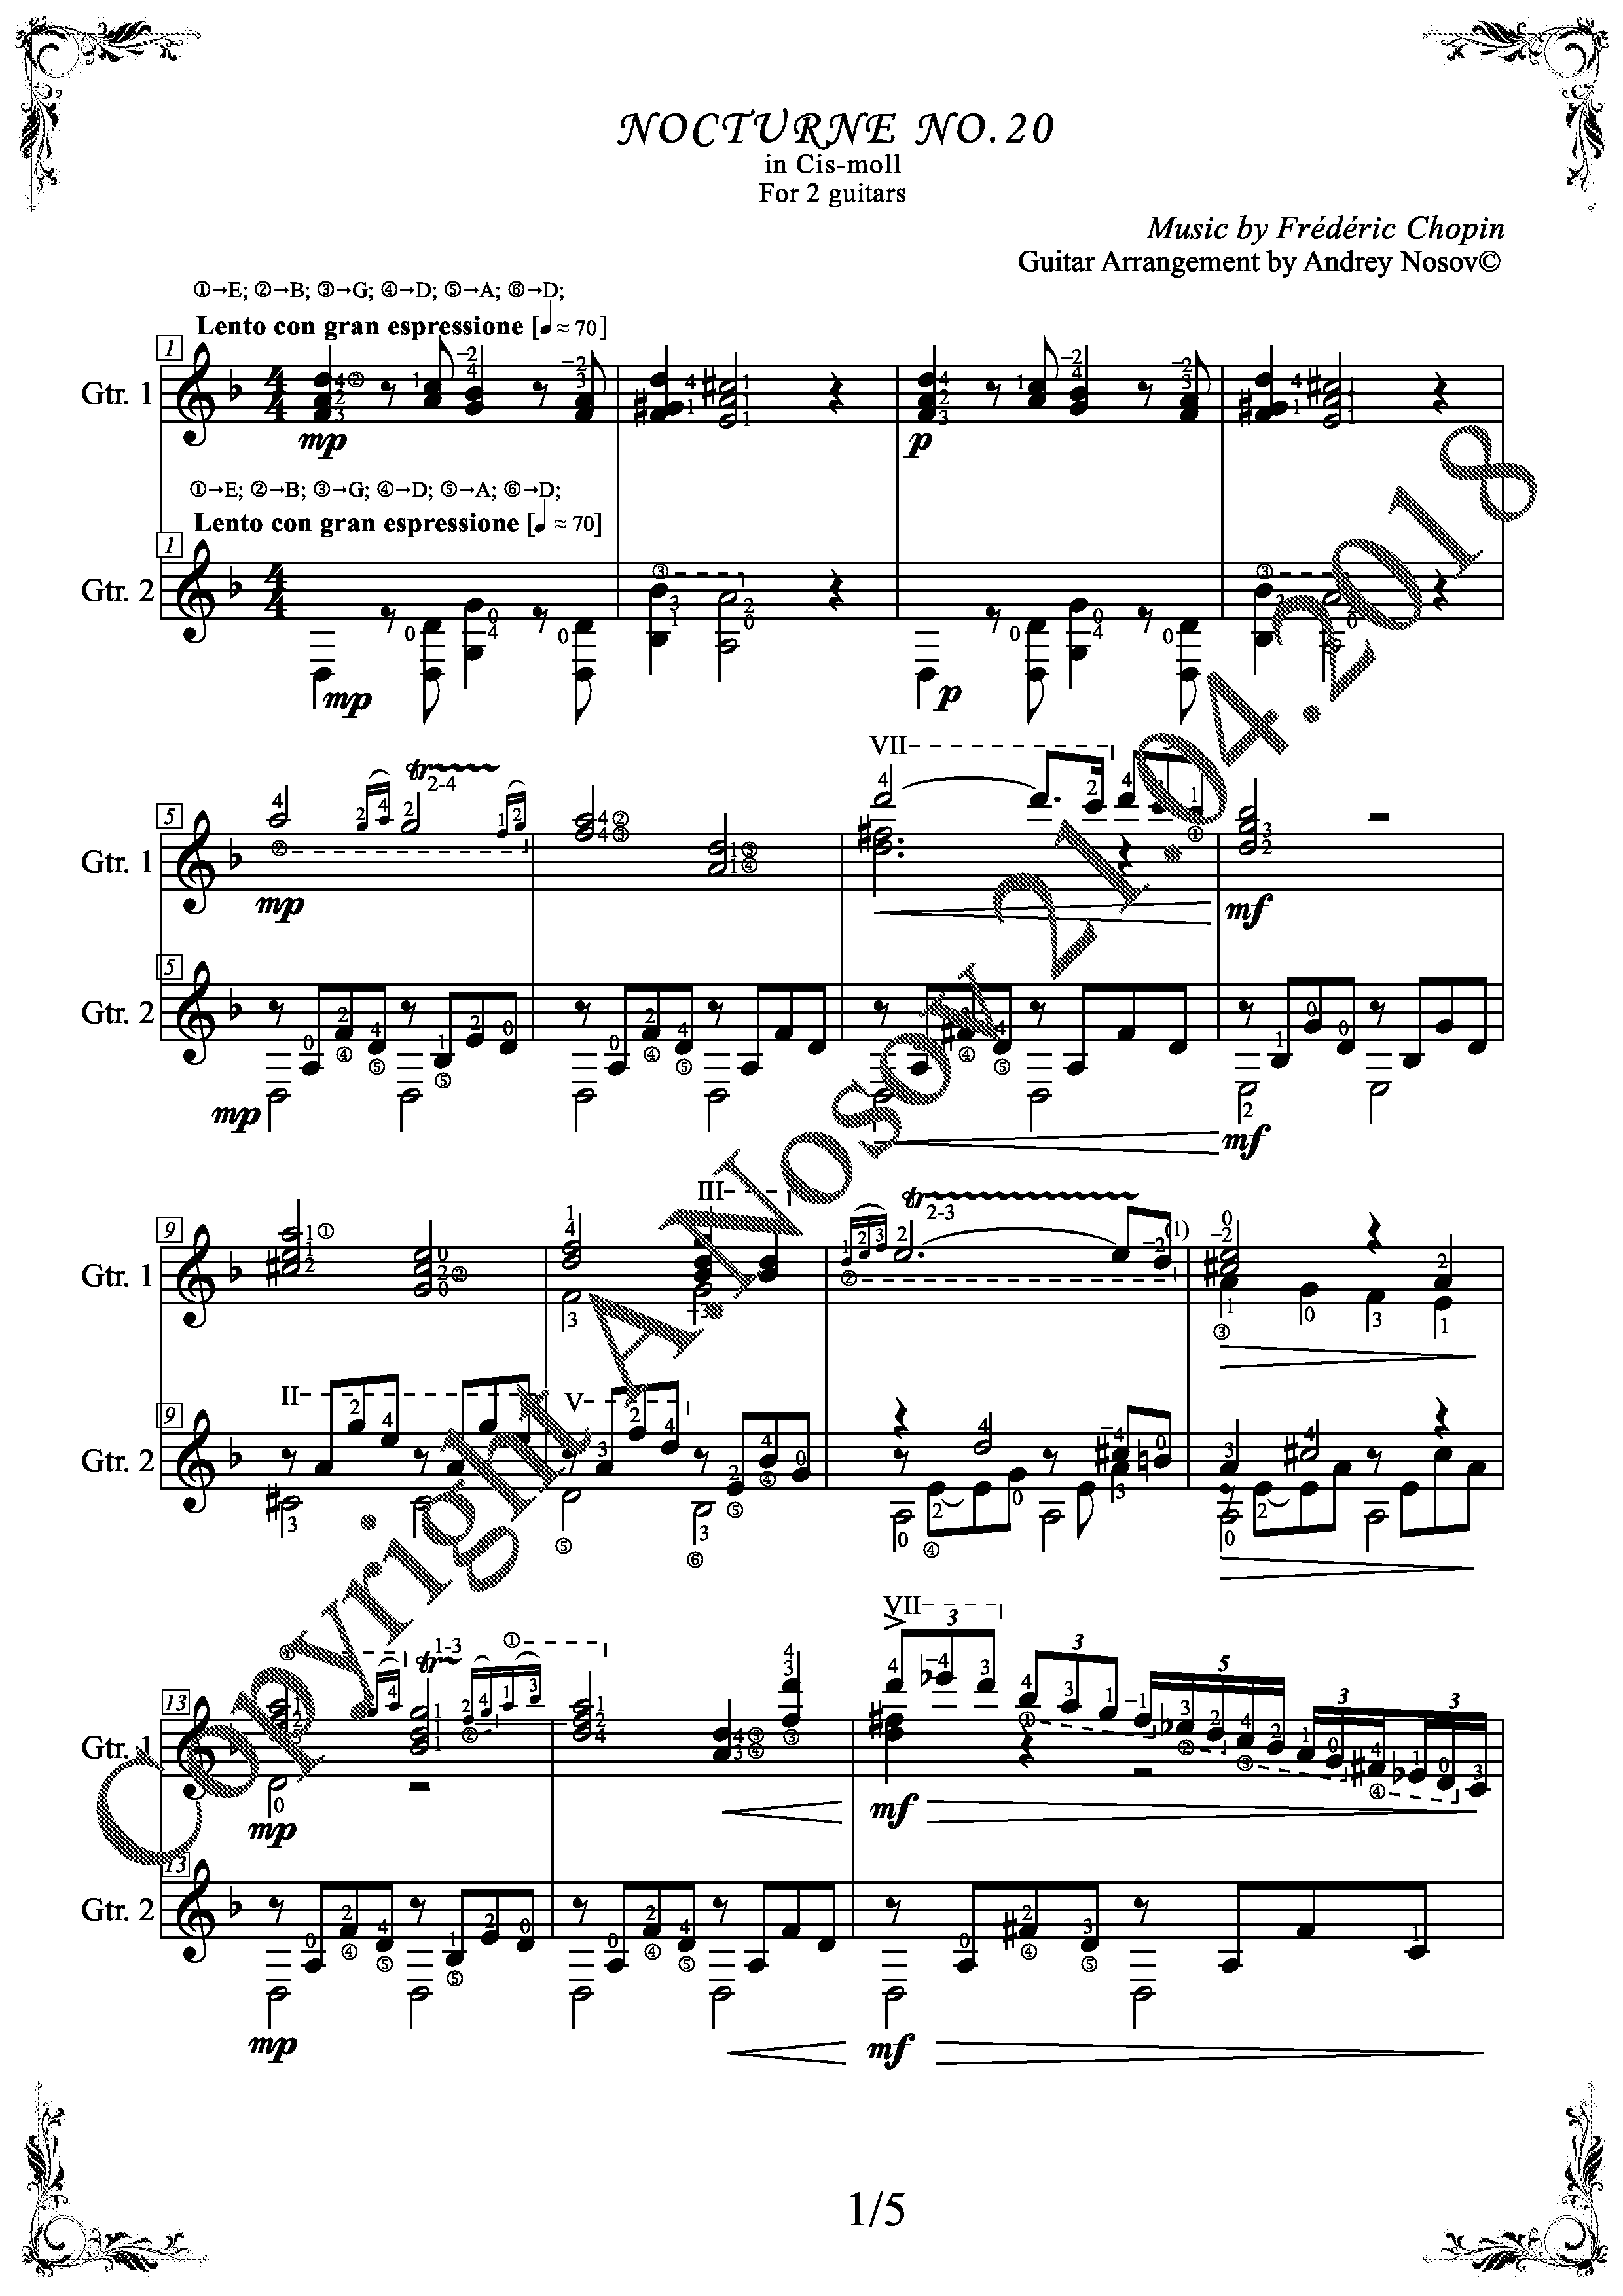 F.Chopin_Nocturne No.20 (Sheet Music for 2 guitars)